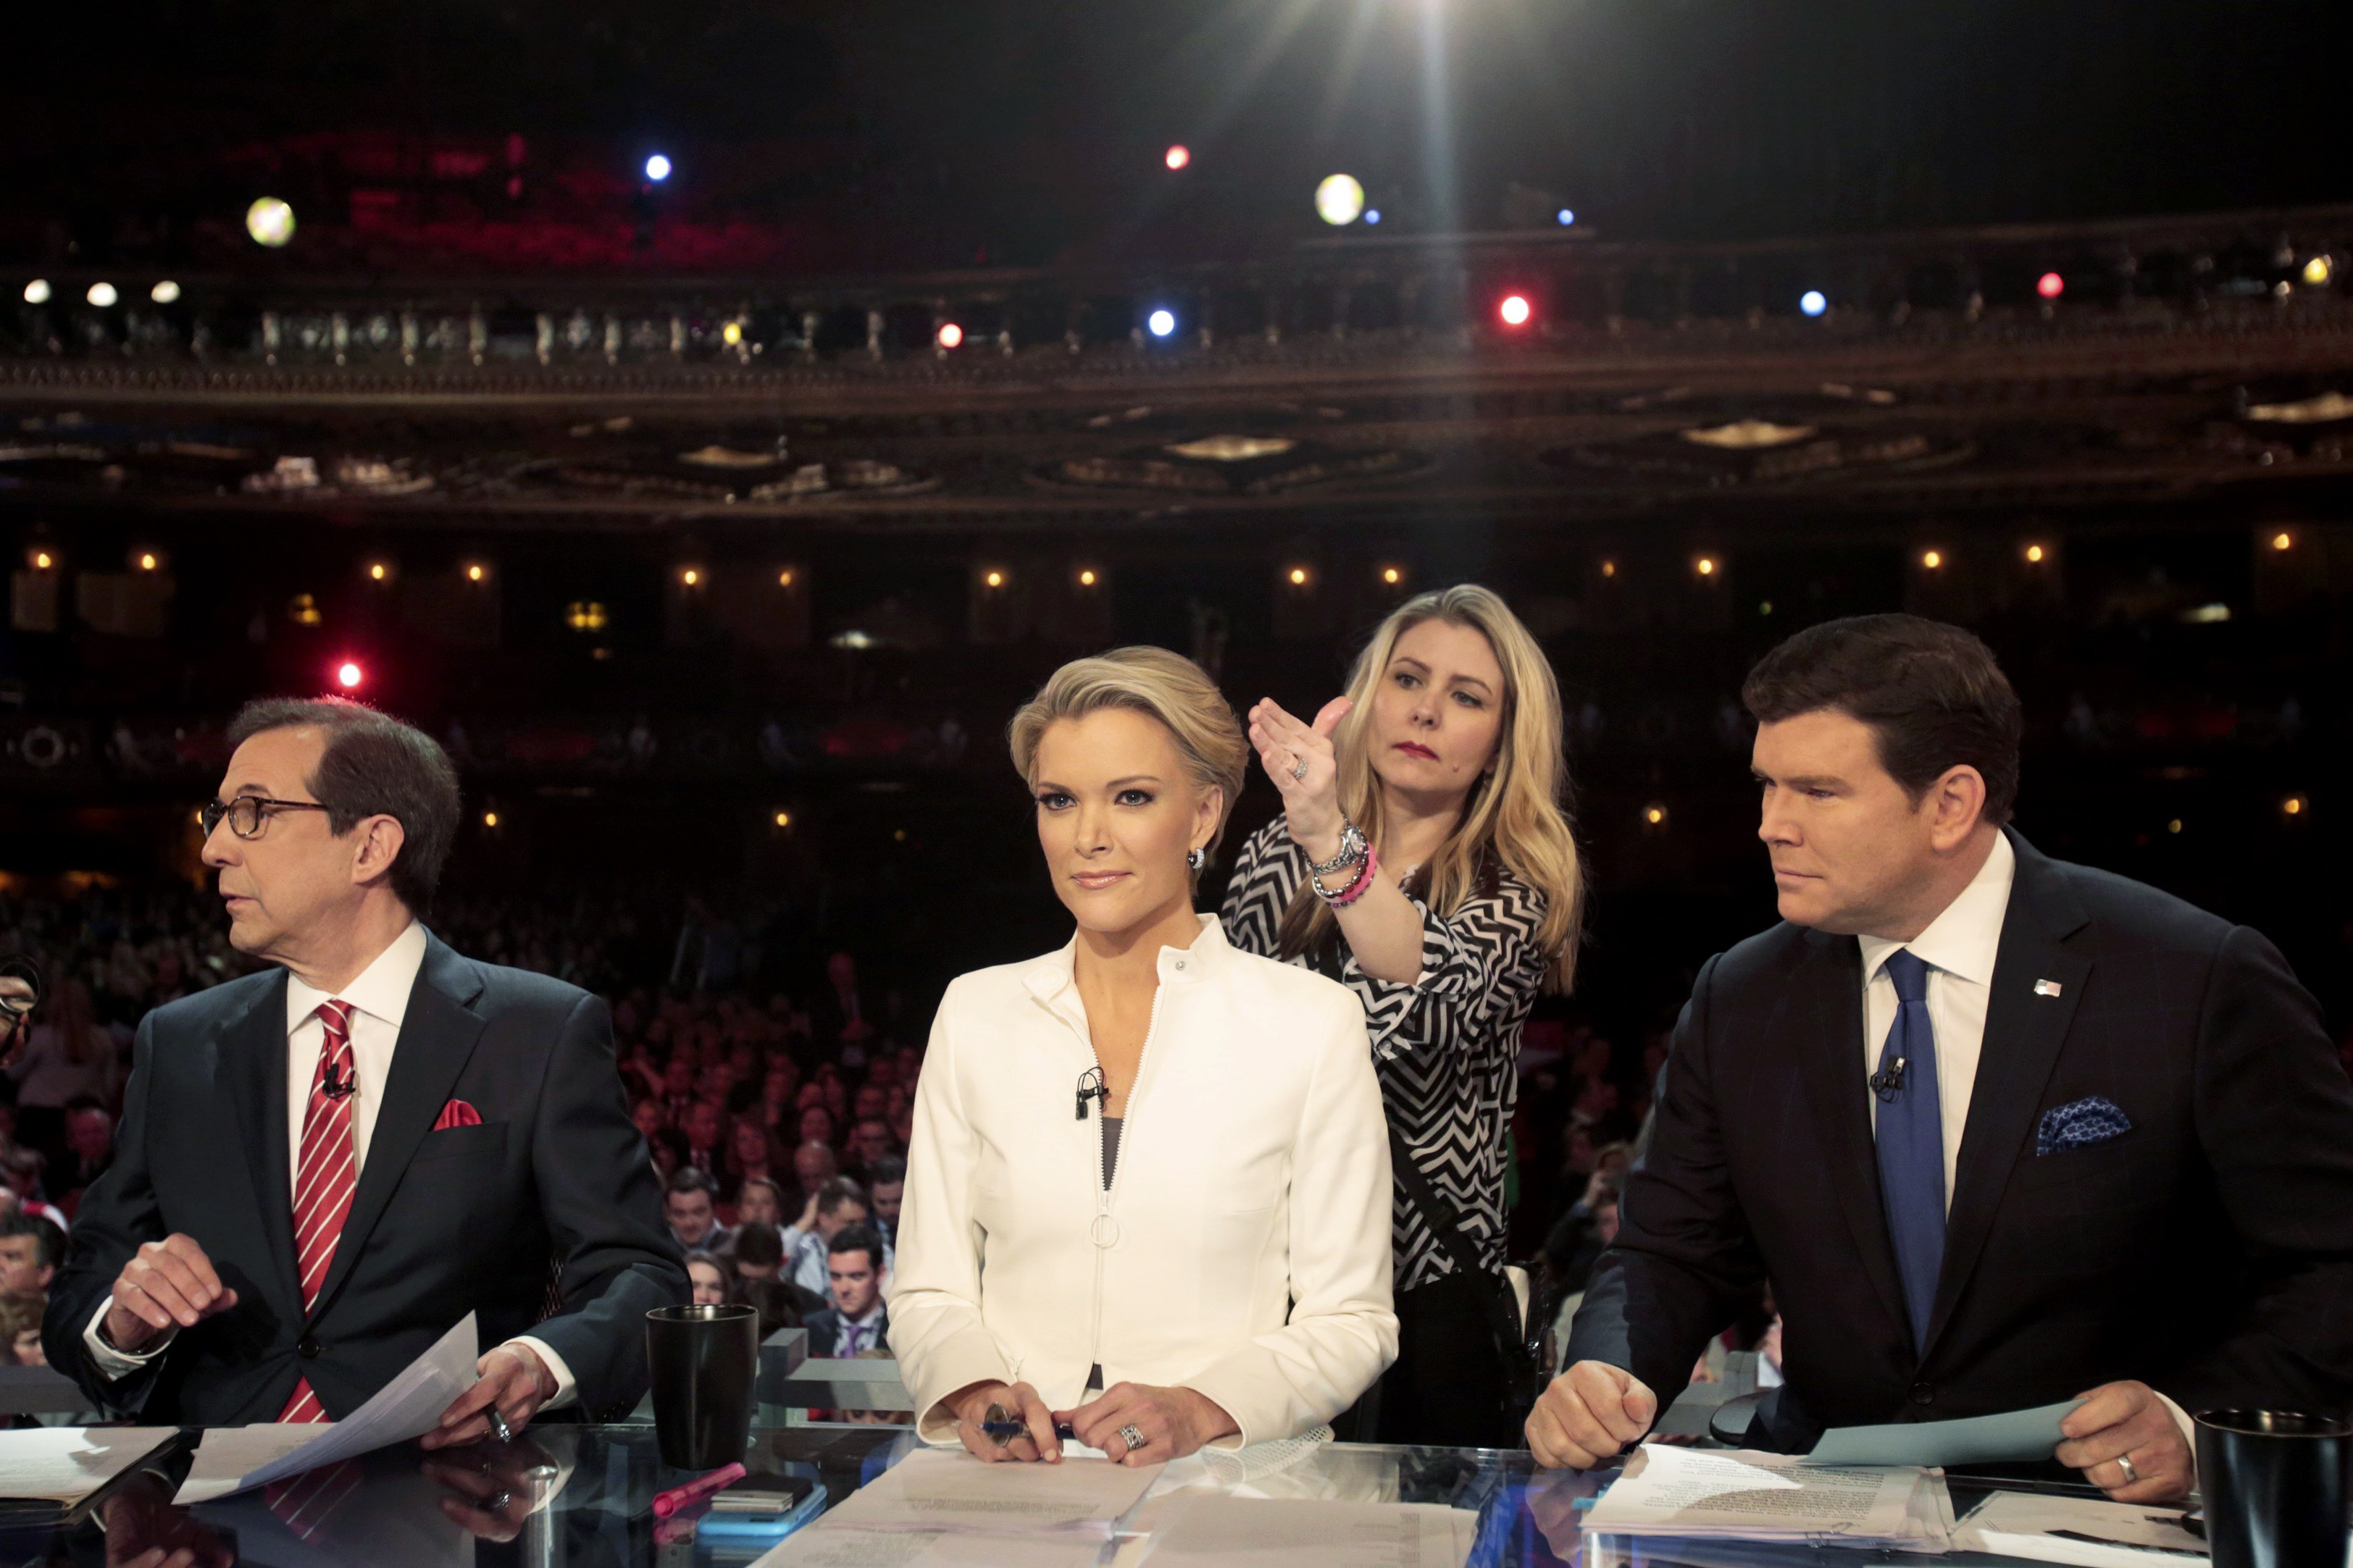 Fox News Channel anchors, from left, Chris Wallace, Megyn Kelly and Bret Baier moderate a debate in Detroit, on March 3.